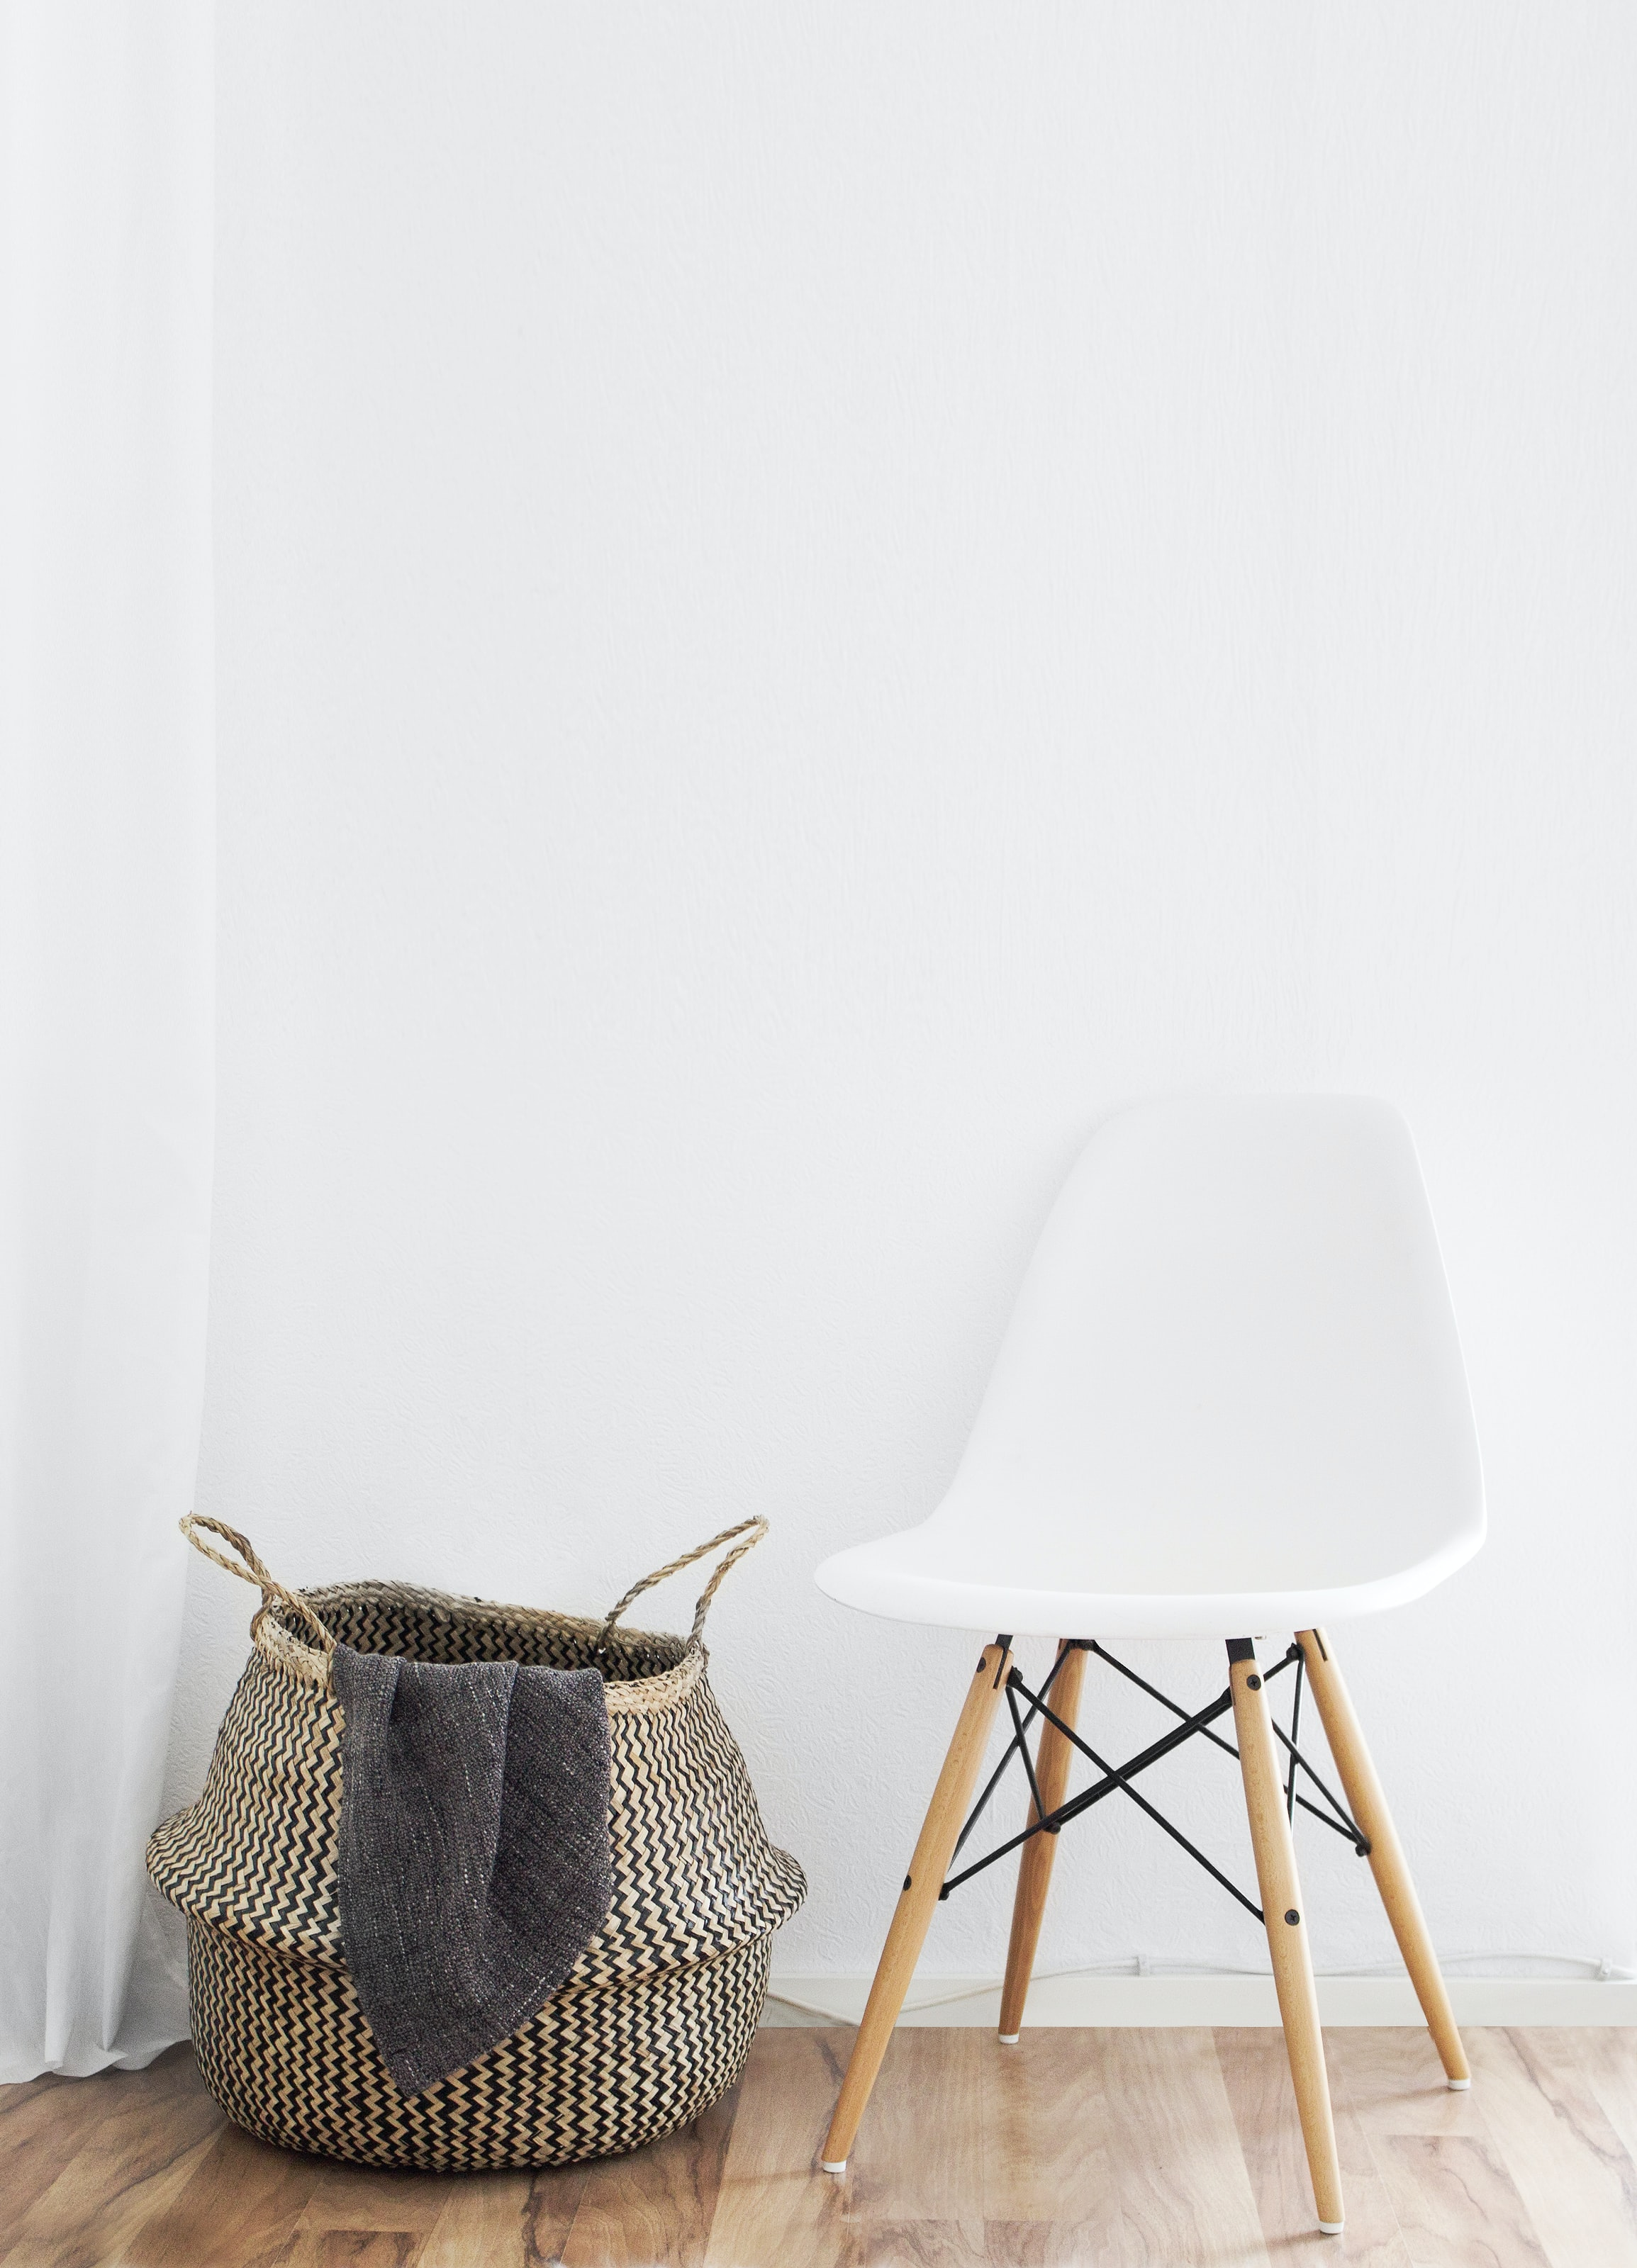 A minimalist shot of a woven laundry basket next to a chair against a white backdrop.